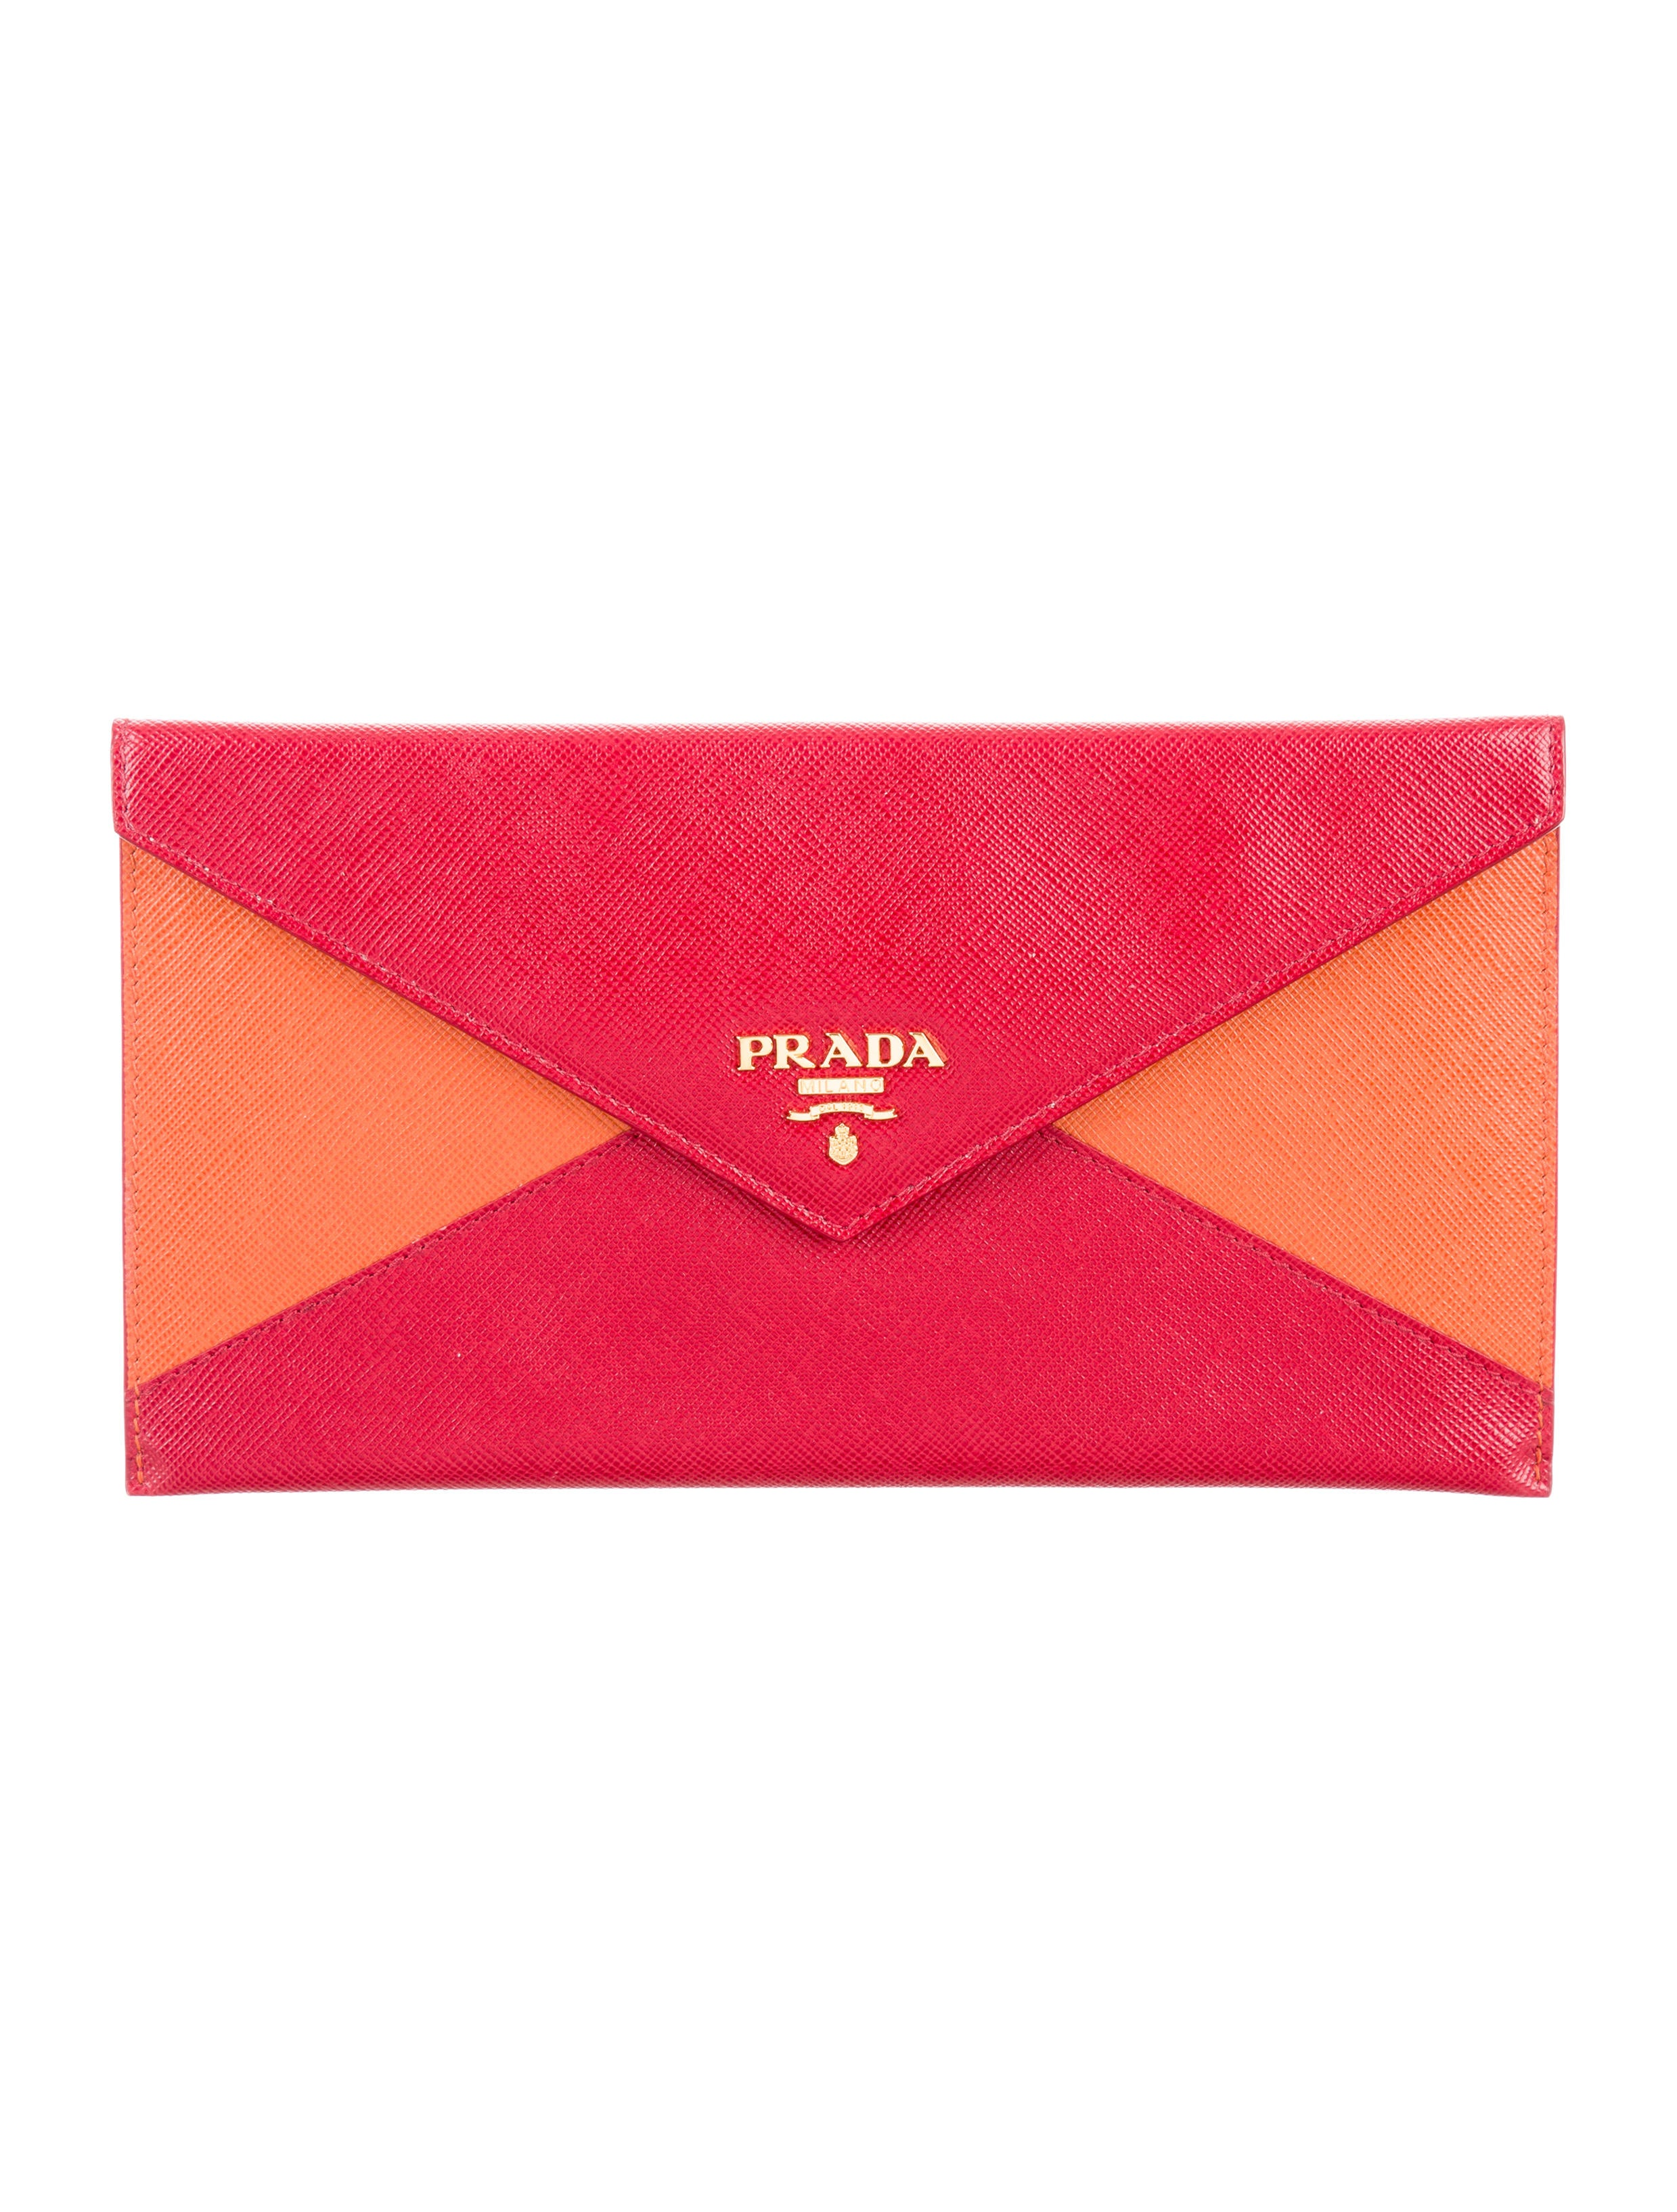 38d03686342c1e Prada Saffiano Bicolor Envelope Wallet - Accessories - PRA146062 ...